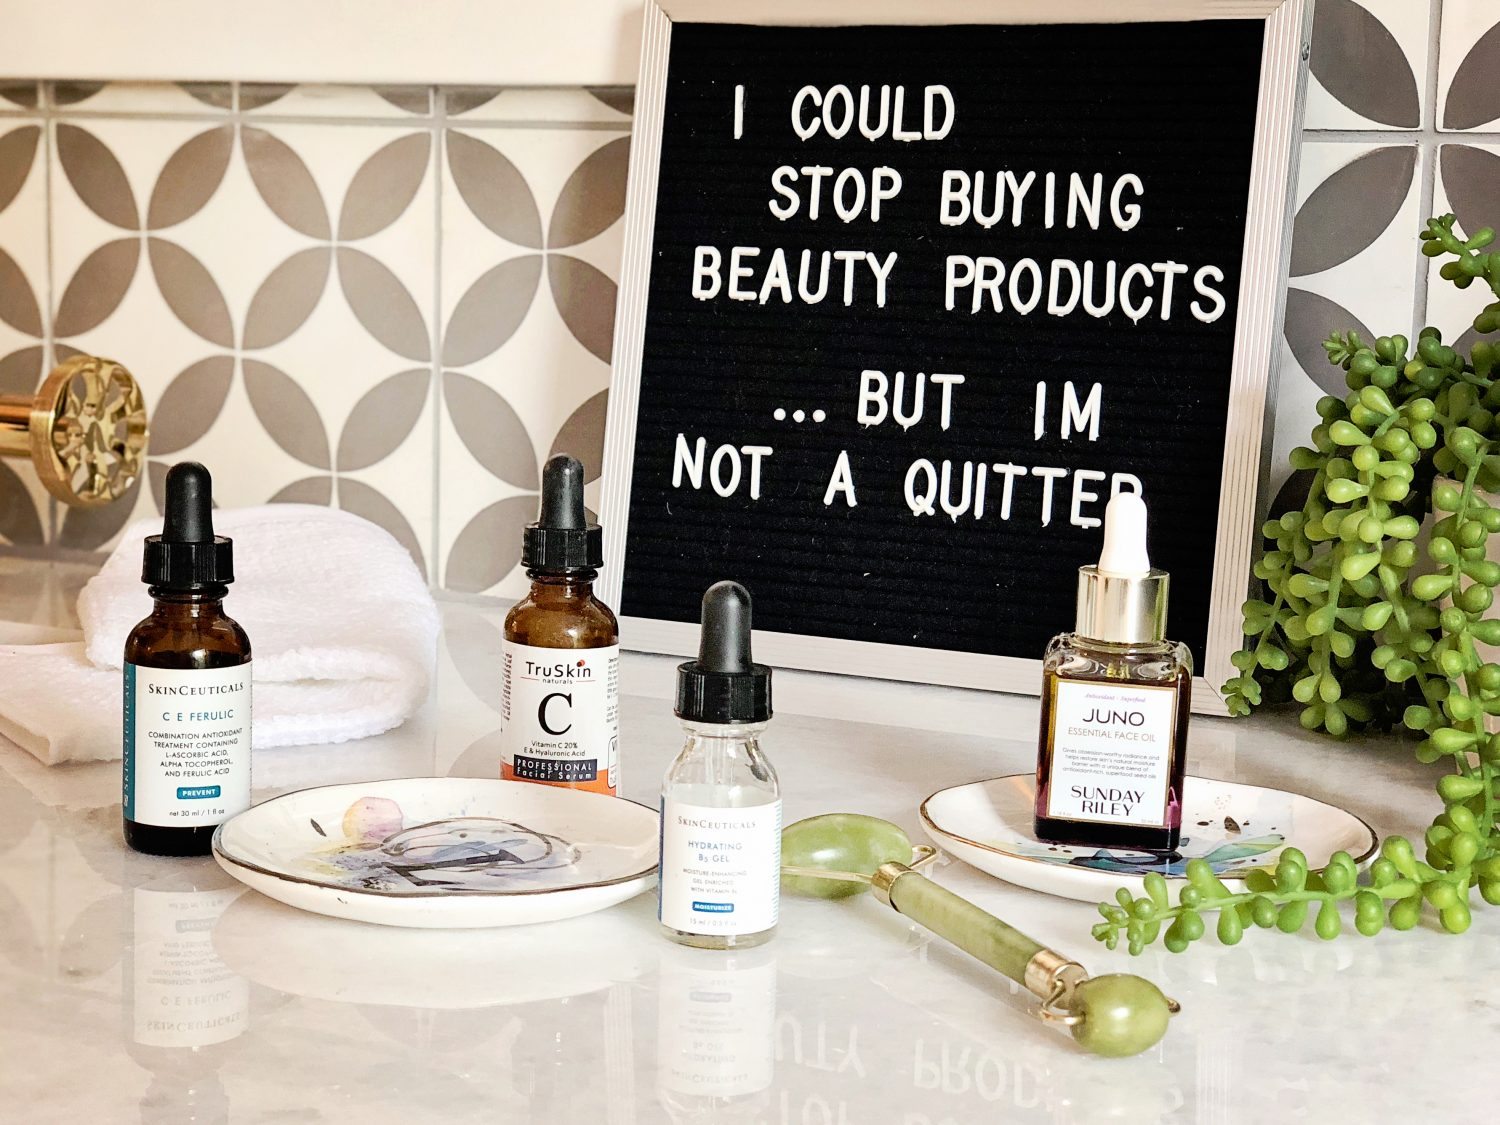 The motherhic summer skincare routine